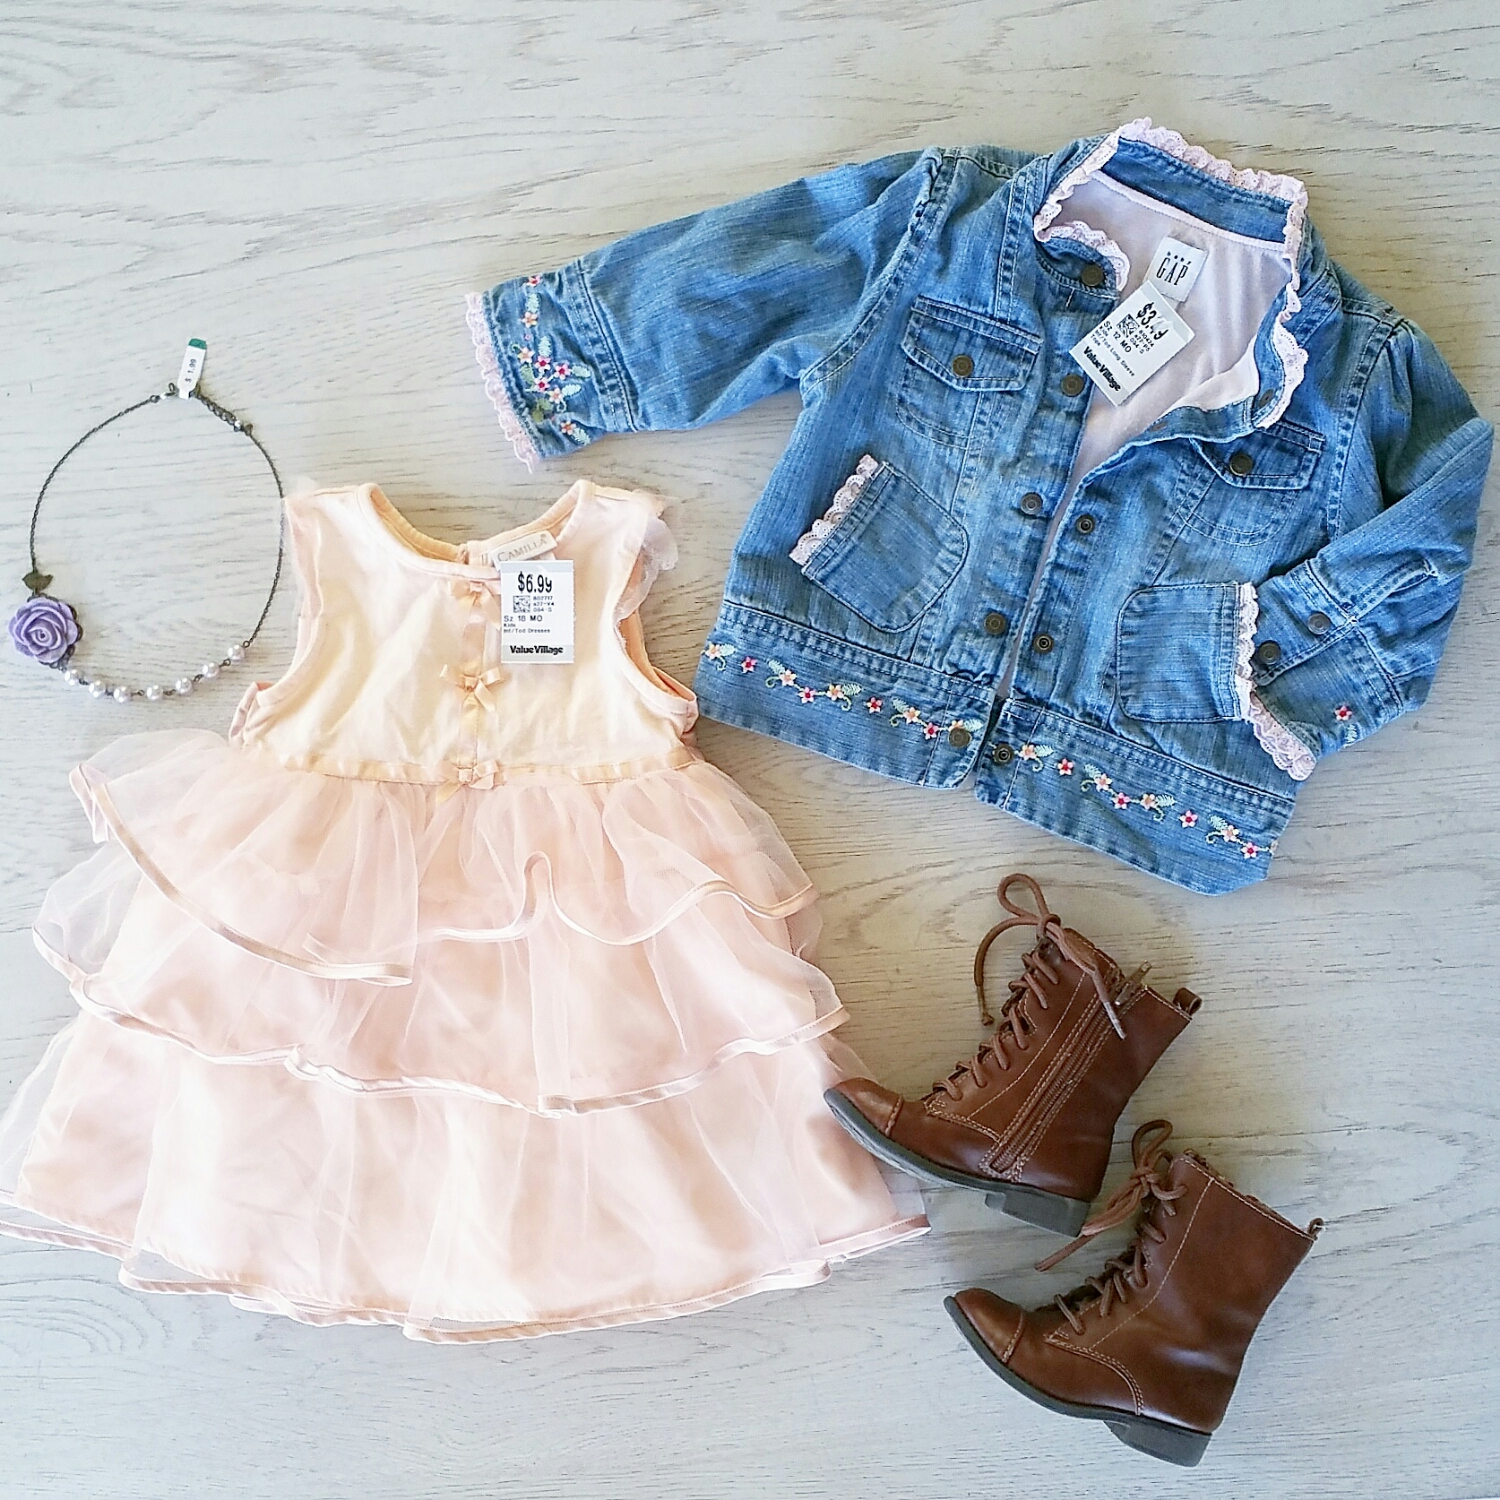 how to thrift shop for kids clothes.jpg